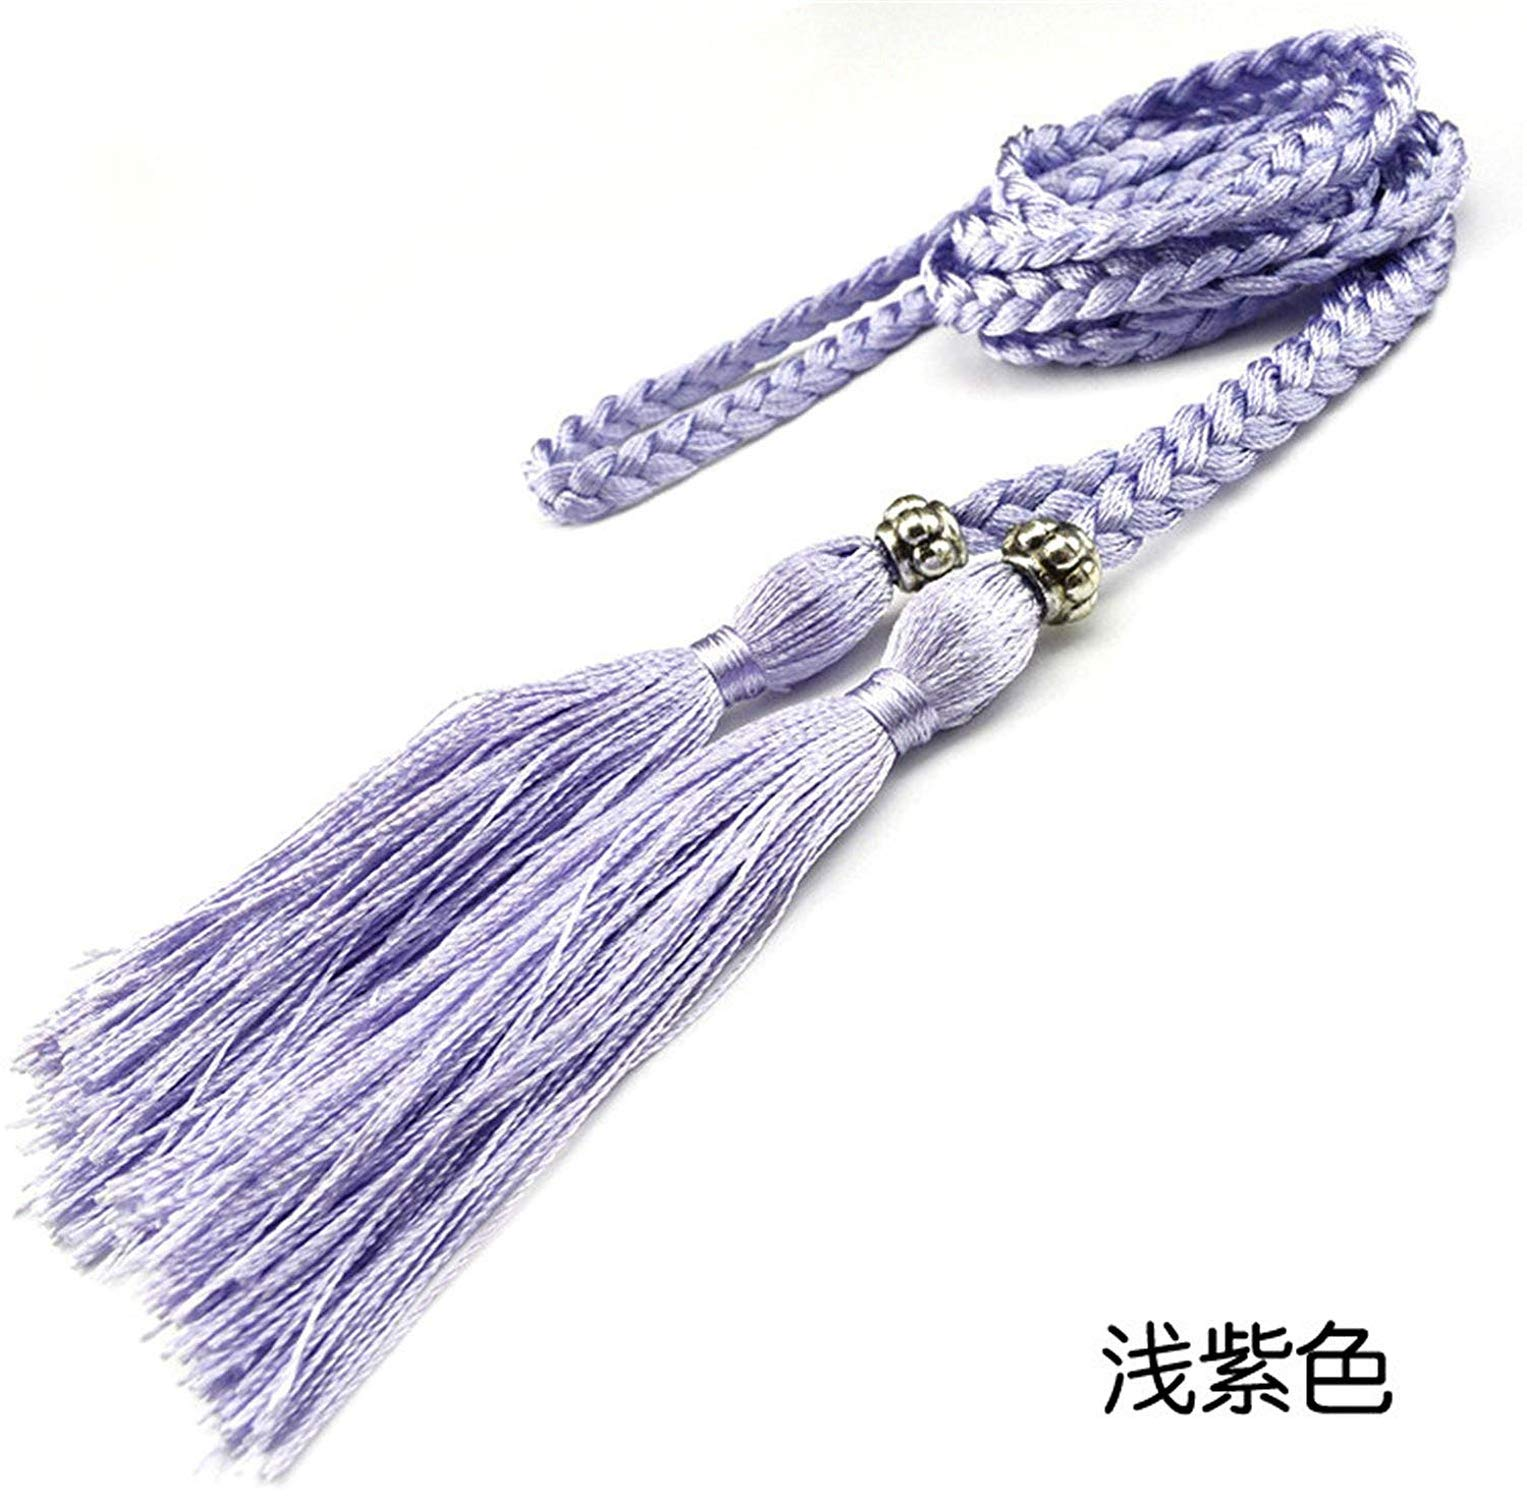 Beautface Makeup Fashion Womens Braided Belt Bowknot Rope Fine Woven Ladies With Tassels,160cm,Lavender